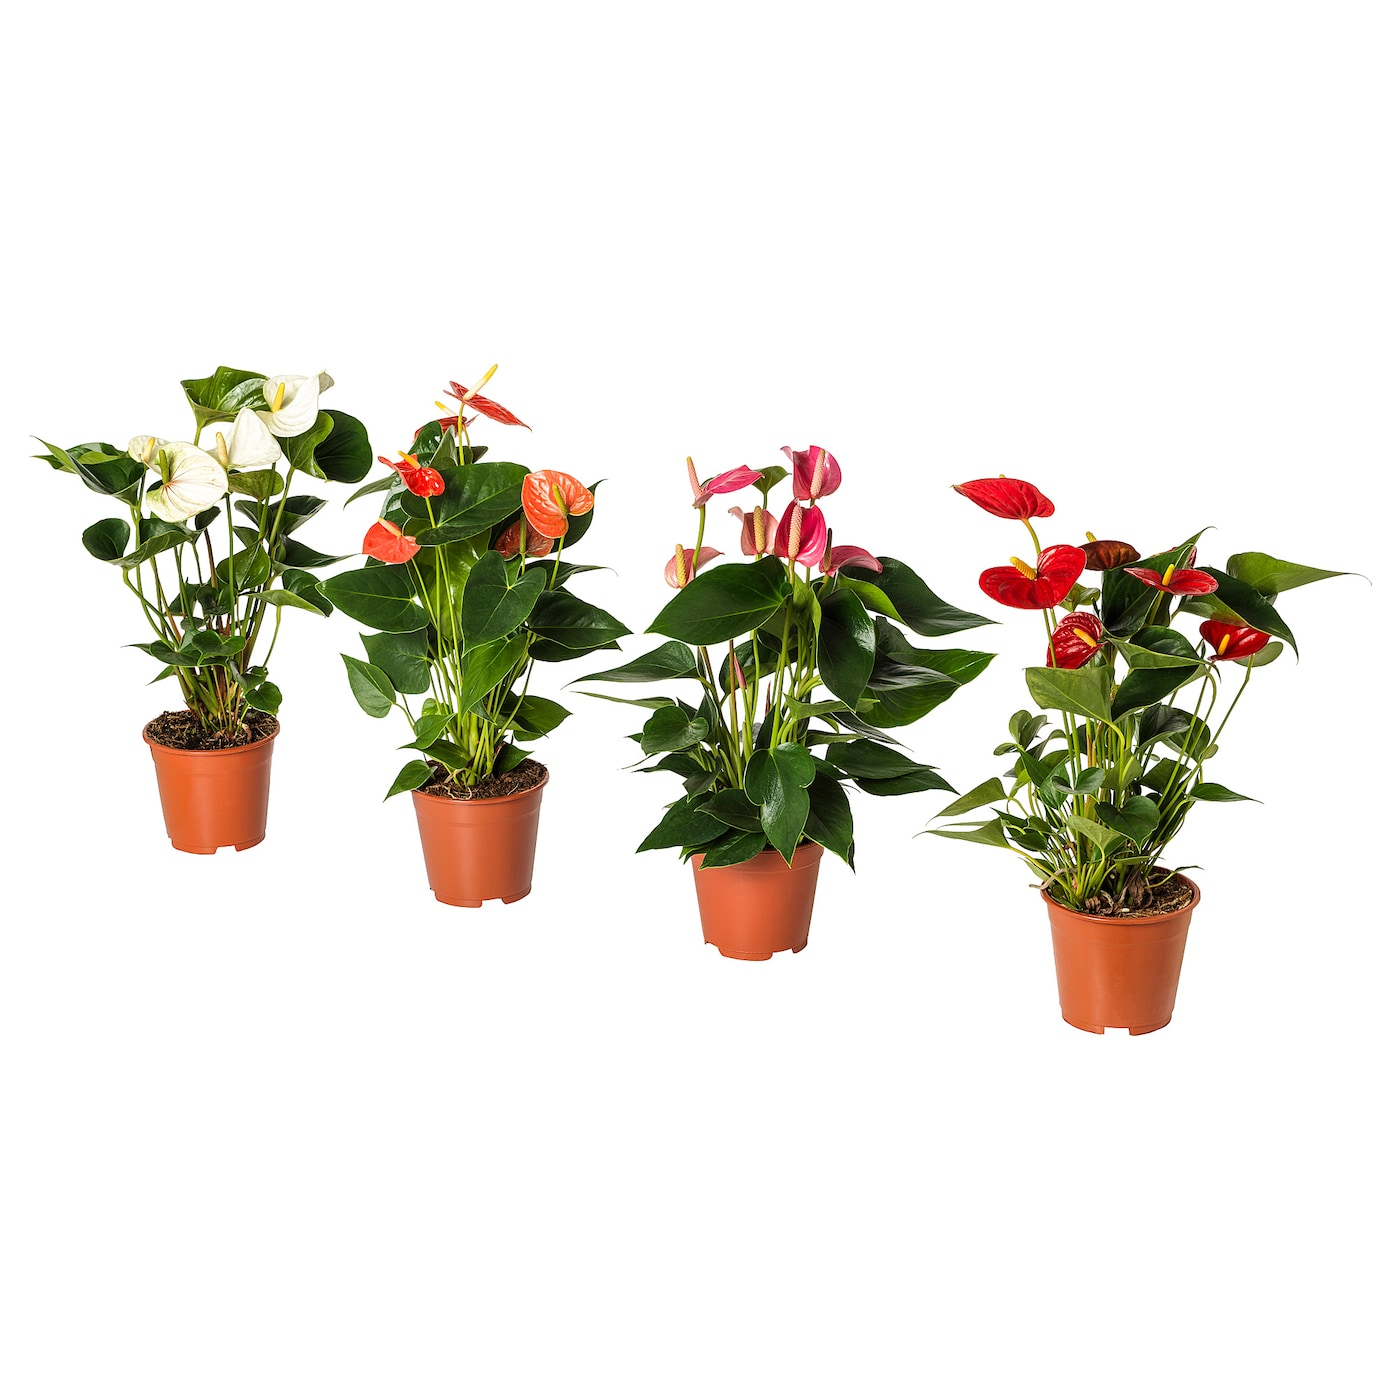 IKEA ANTHURIUM plante en pot